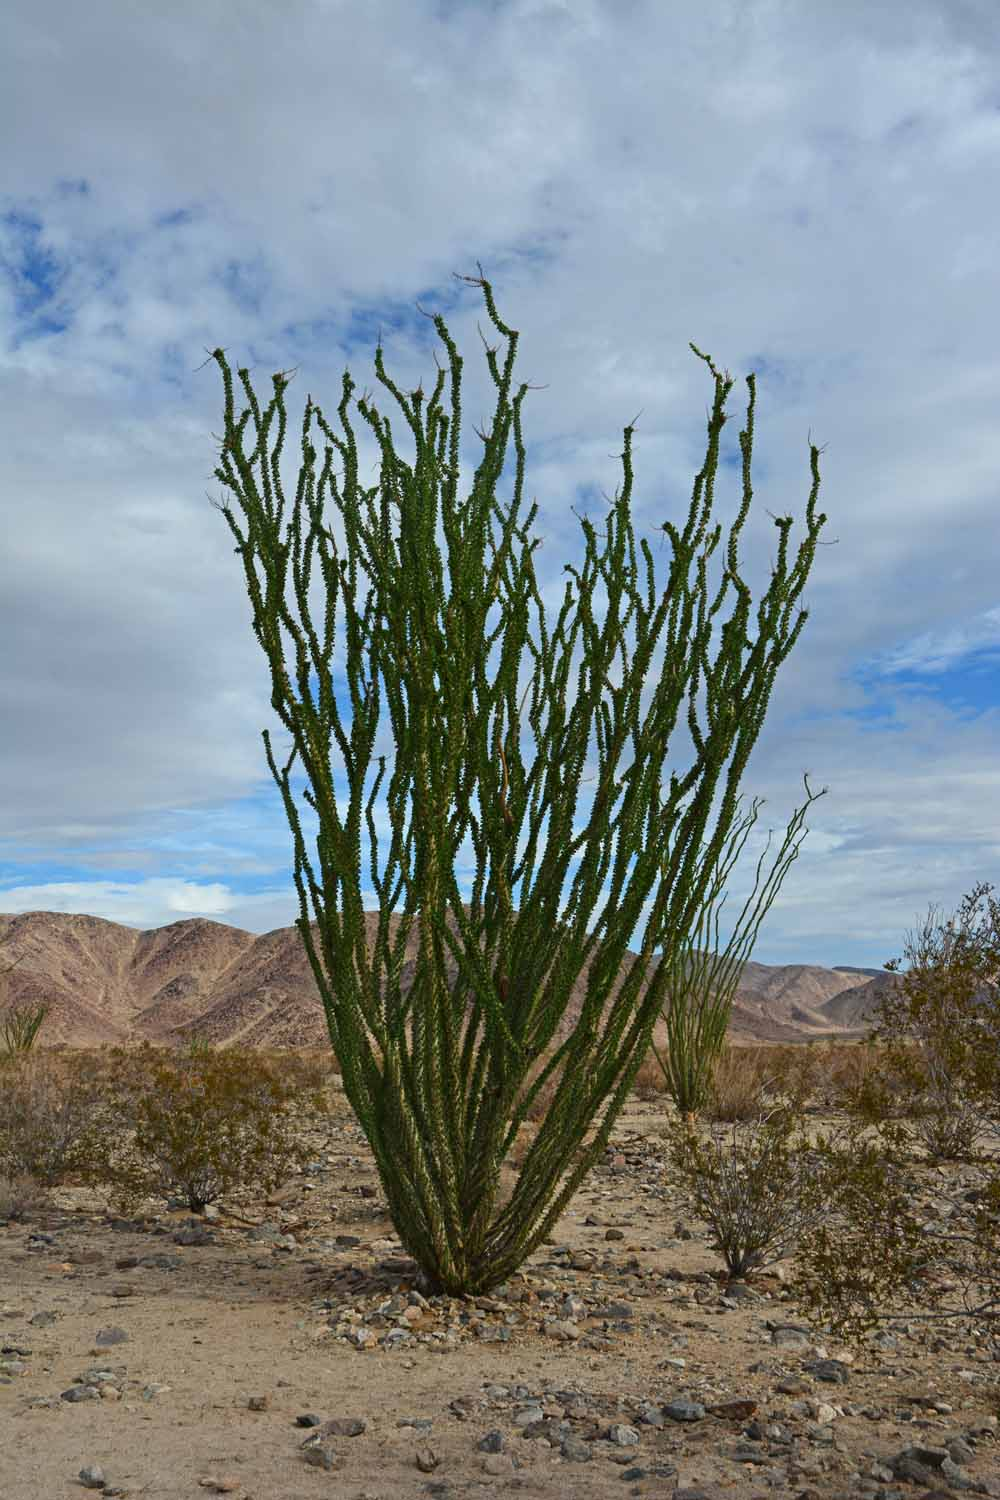 We found these plants fascinating.  They are Ocotillo plants and interestingly they are deciduous.  These plants loose their leaves when it is dry so they complete the cycle several times a year.  They were all green when we saw them as there had been recent rains.